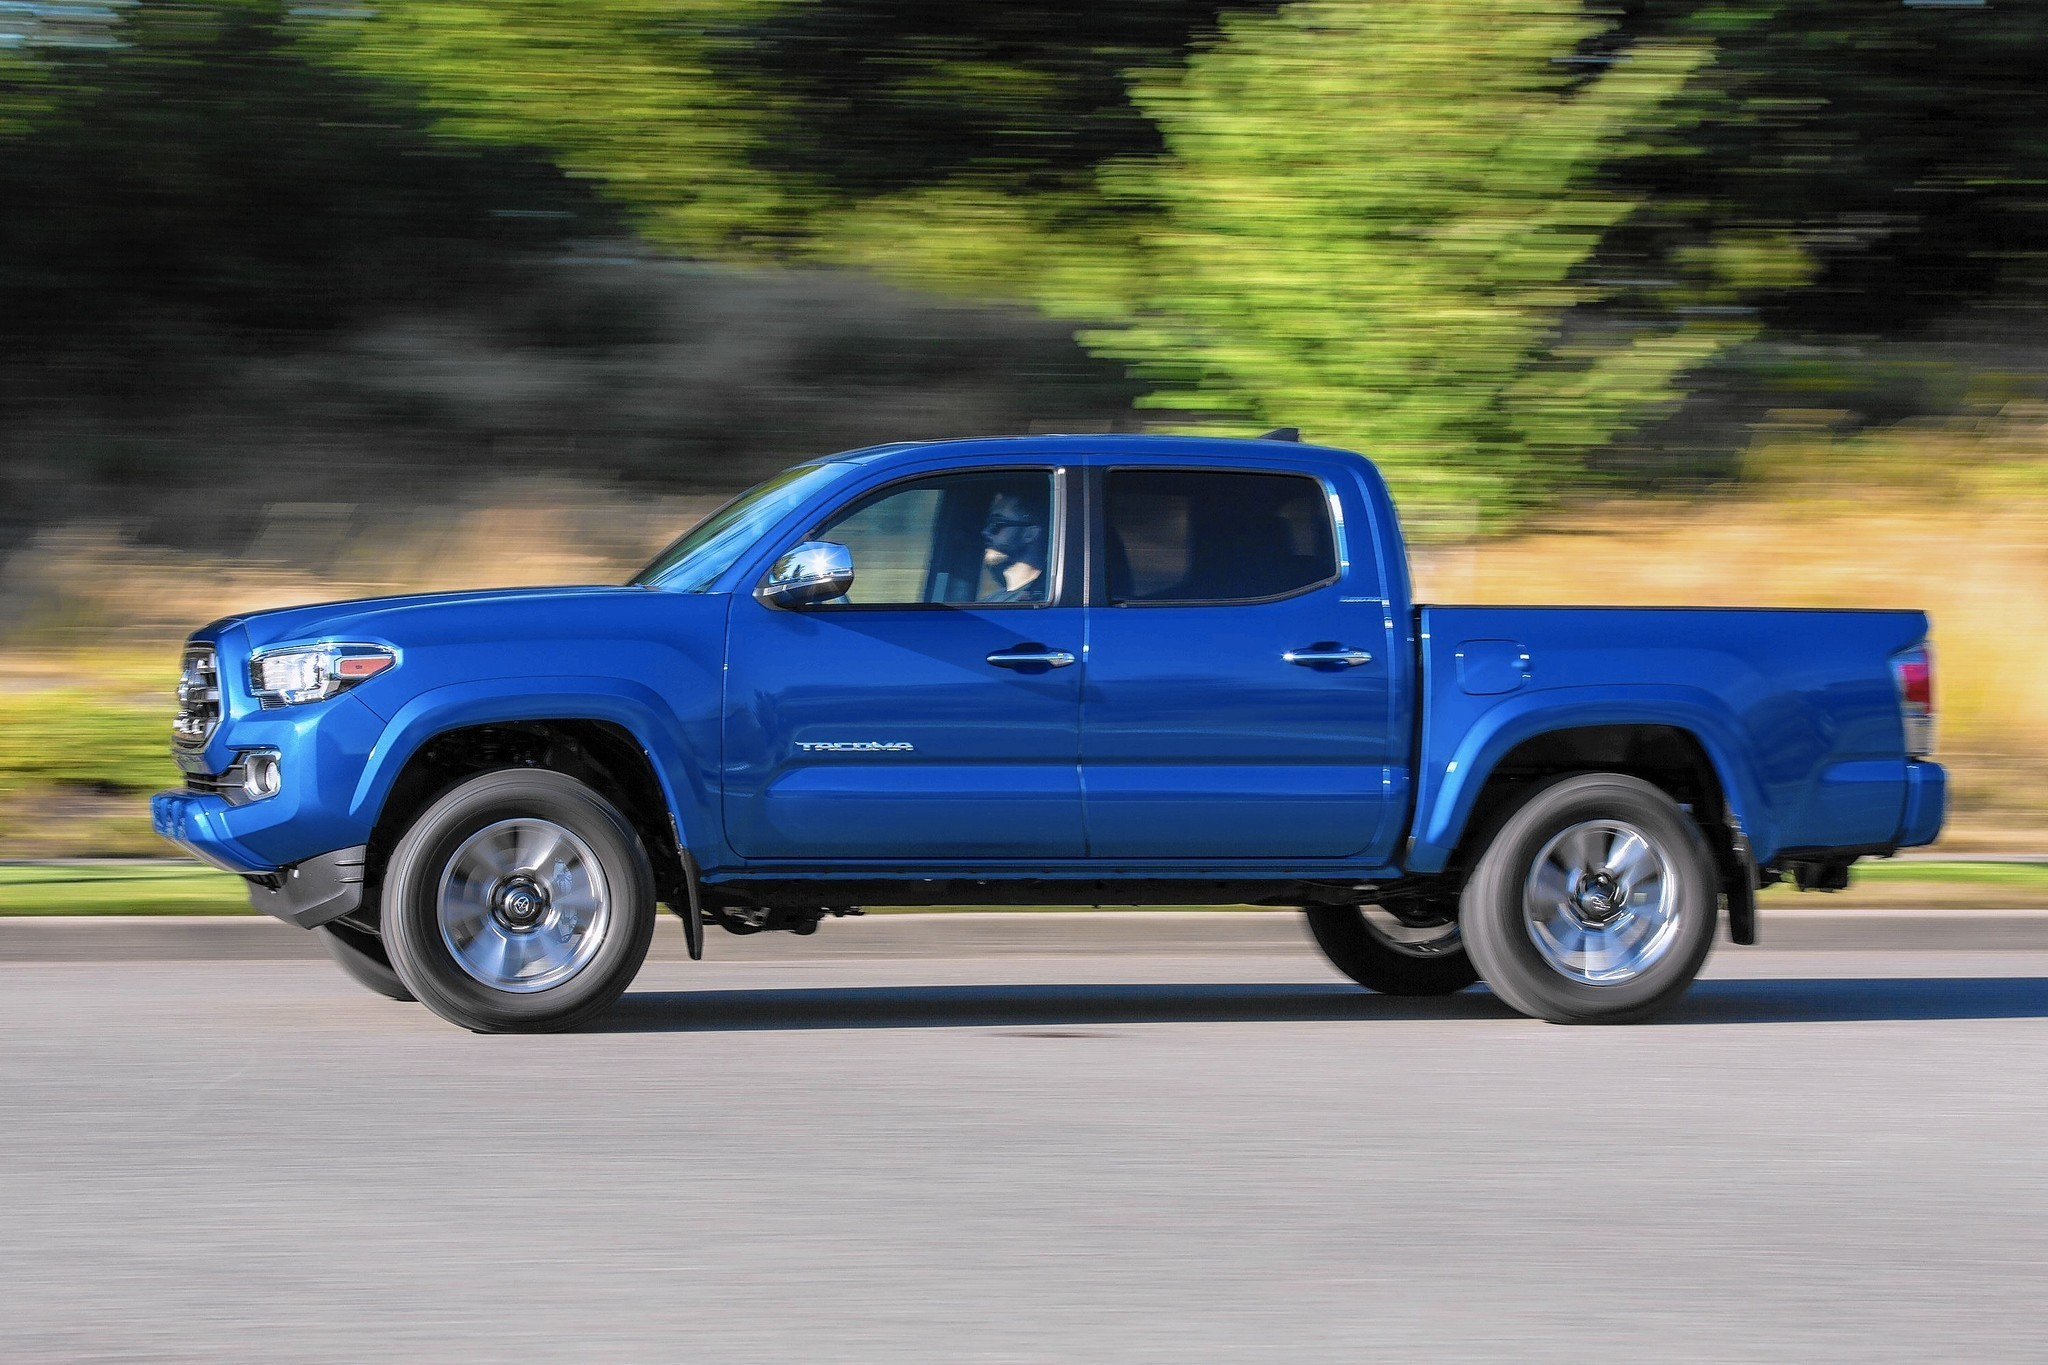 rugged toyota tacoma midsize pickup returns with new design new power chicago tribune. Black Bedroom Furniture Sets. Home Design Ideas